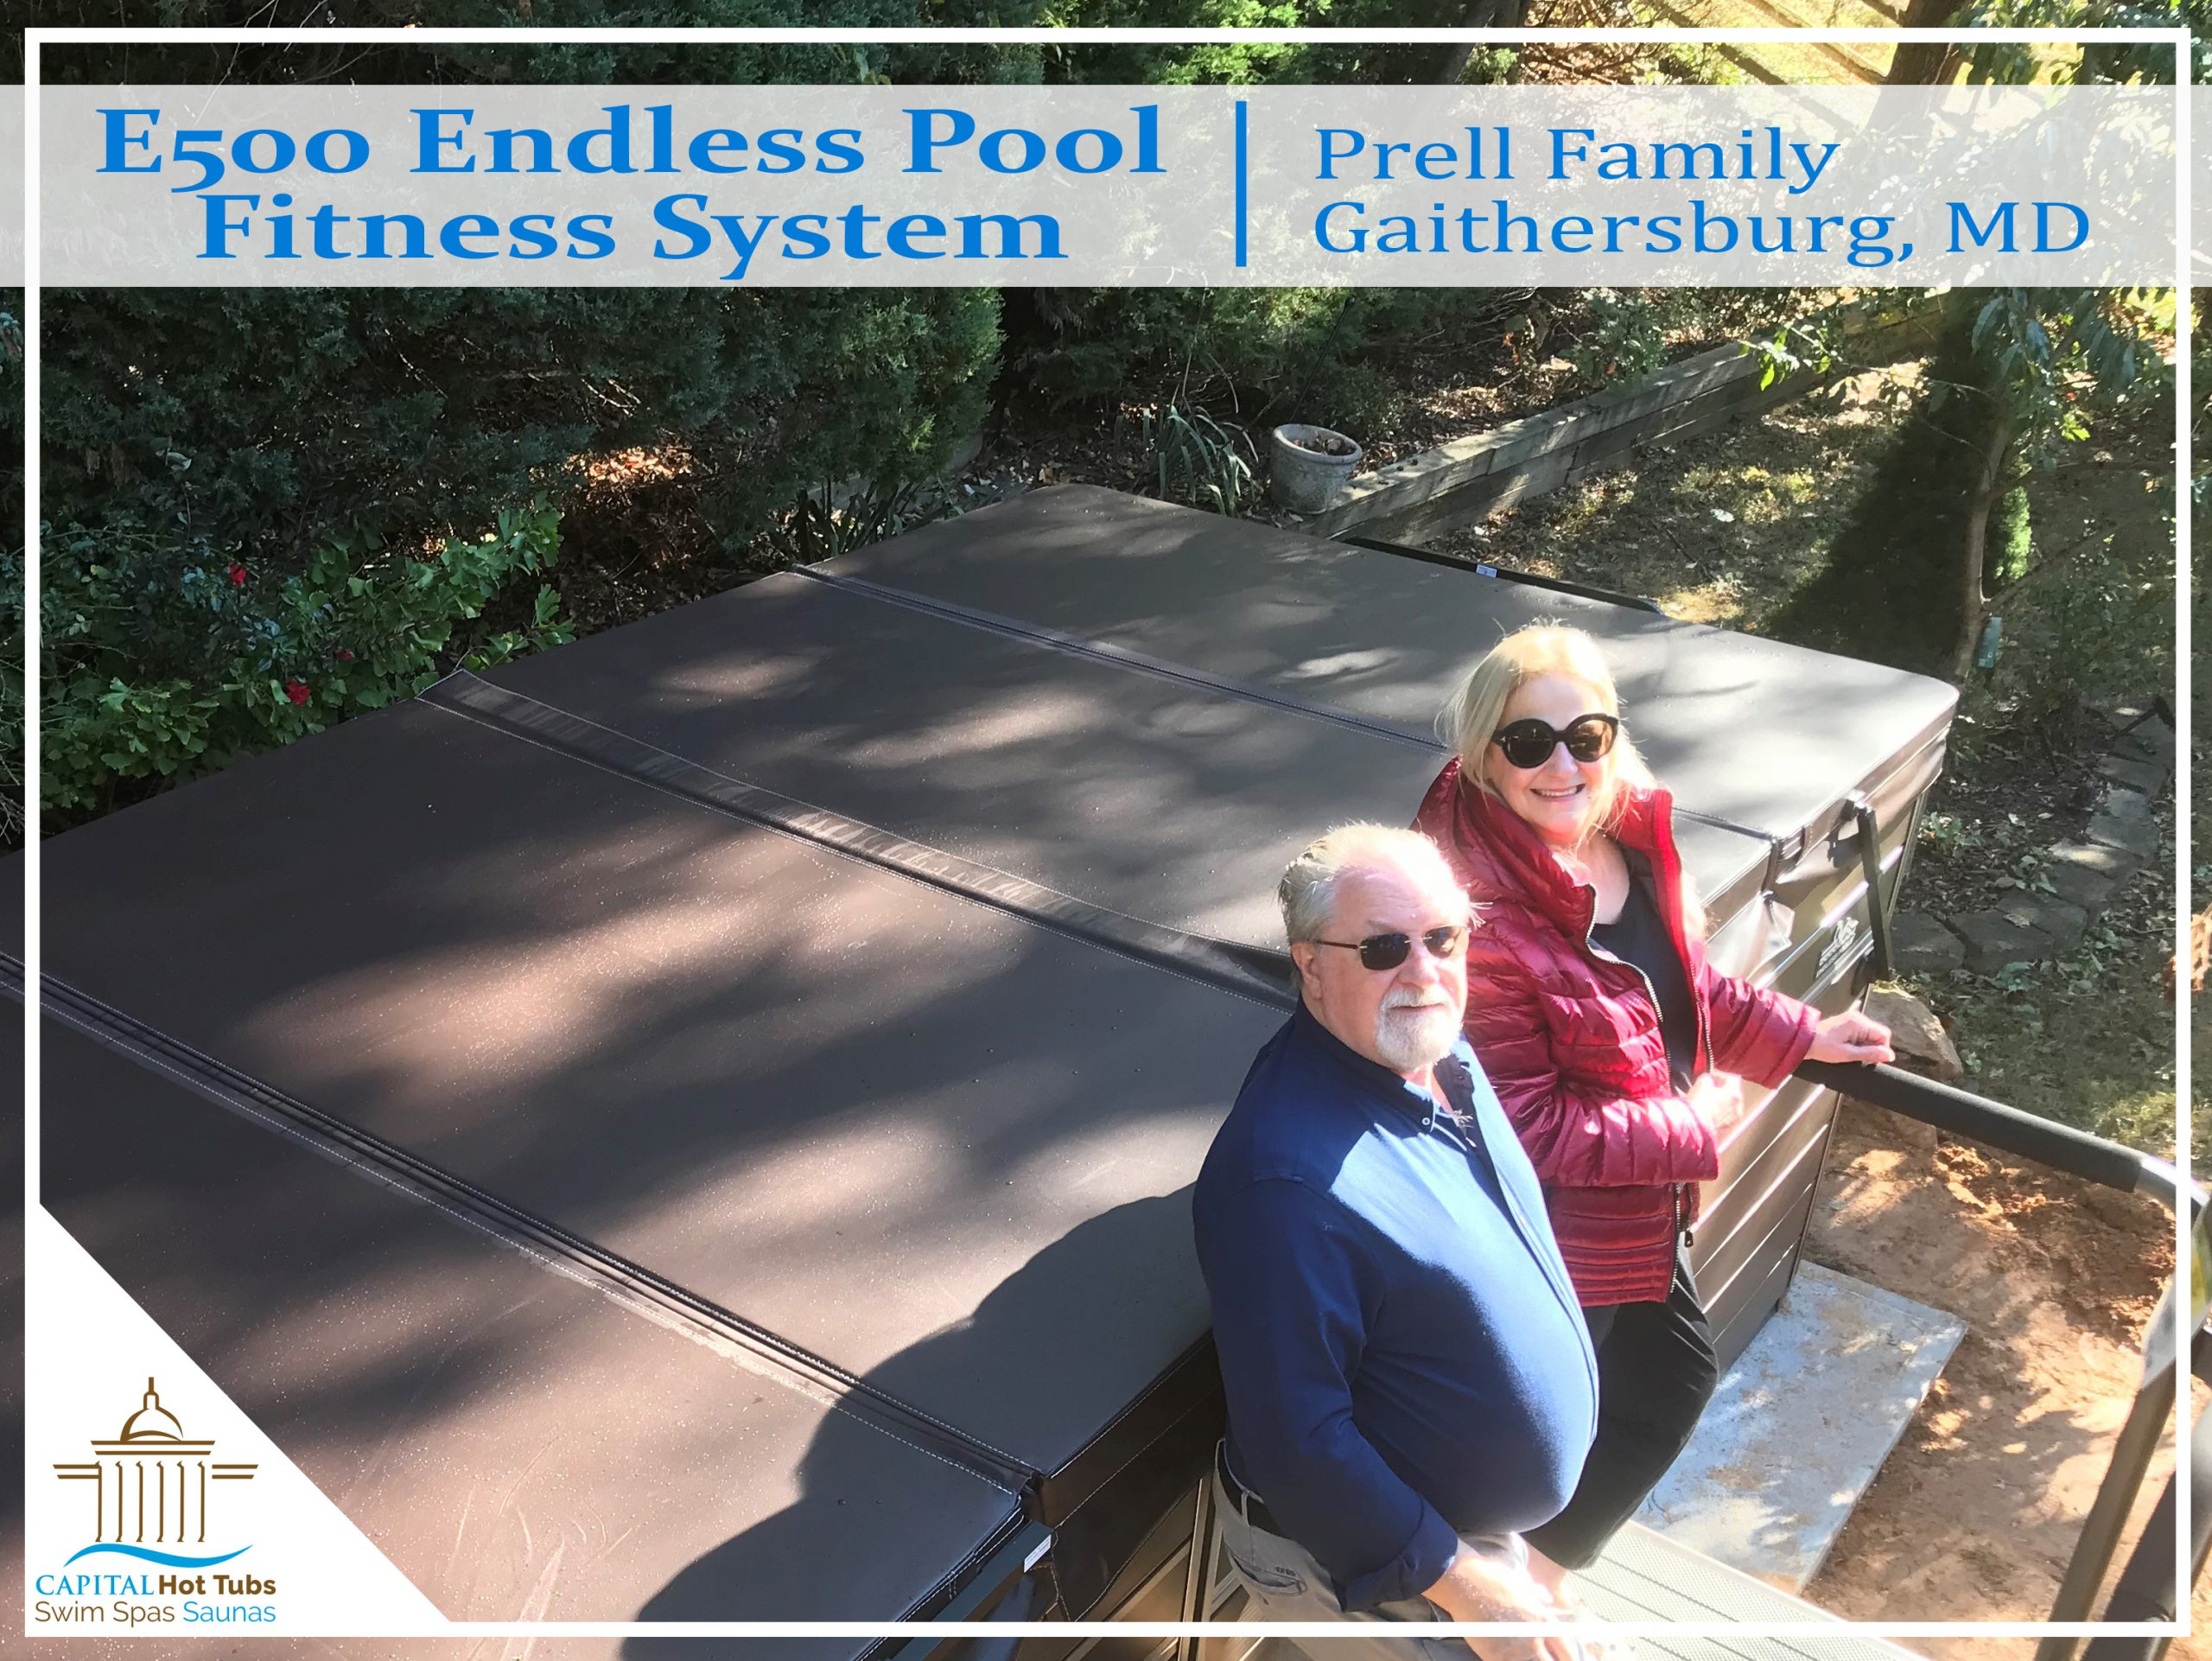 Endless Pool fitness system gaithersburg, md